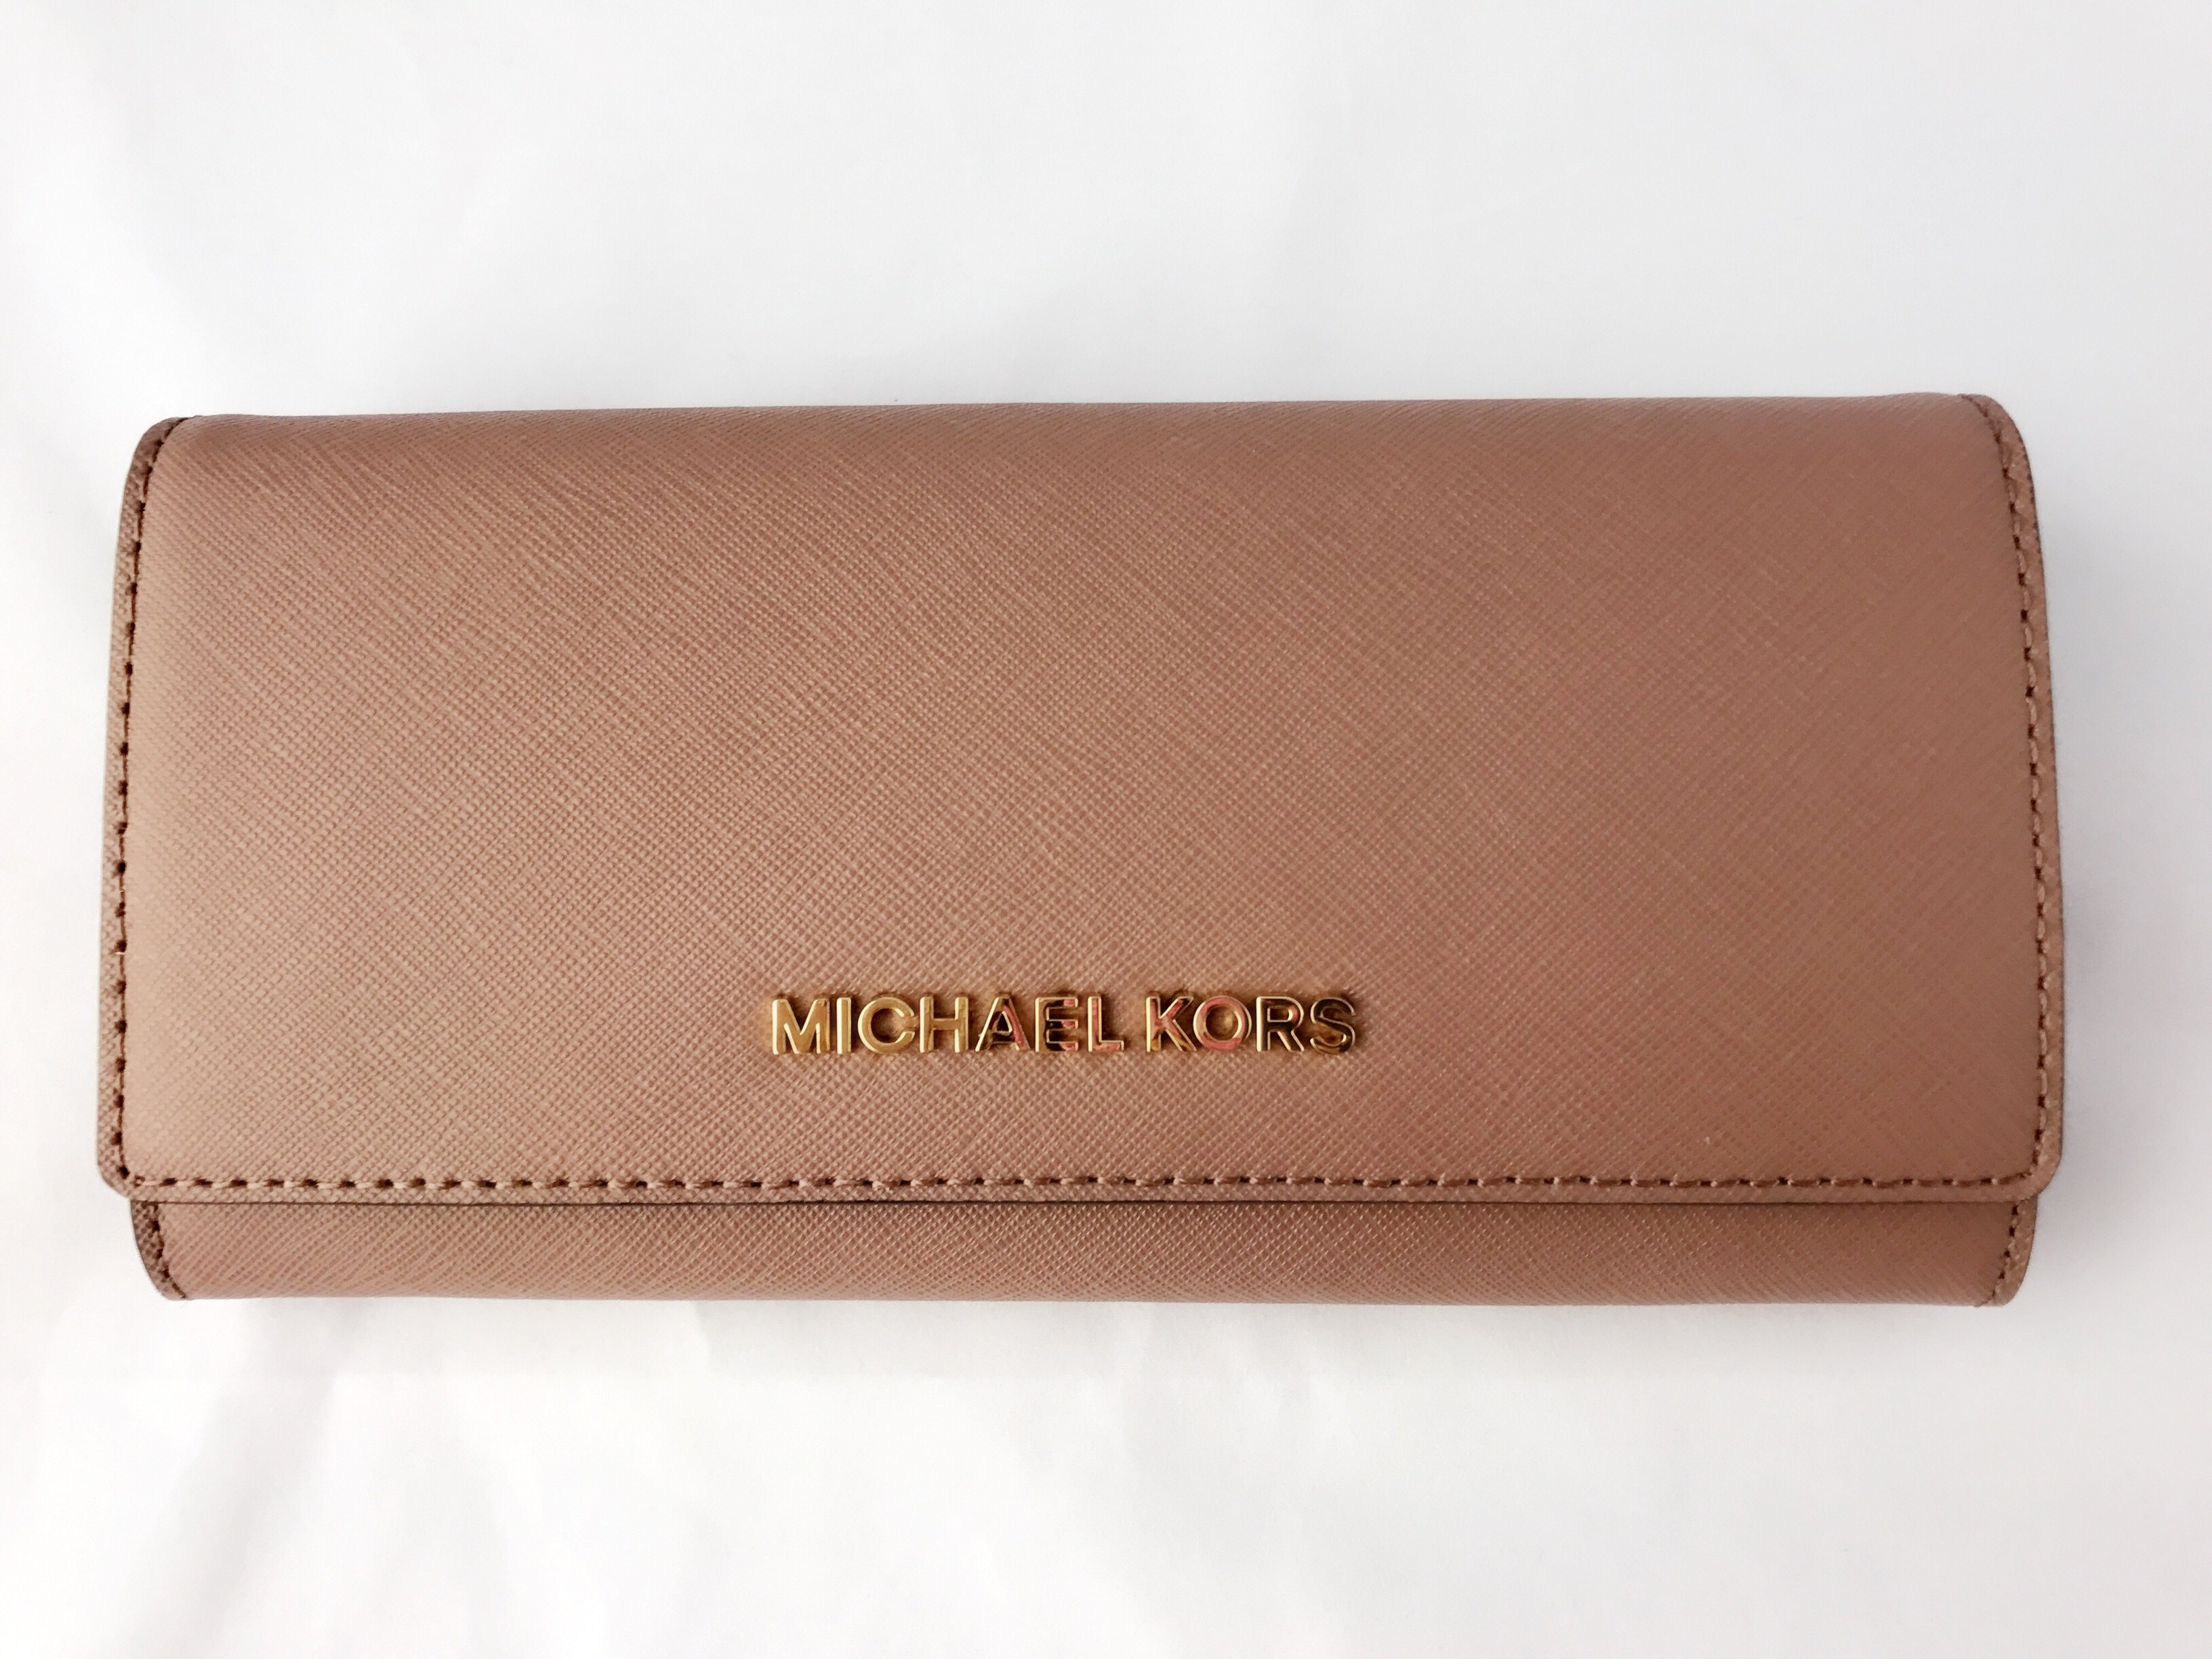 Brown leather wallet Michael Kors XnqD0d